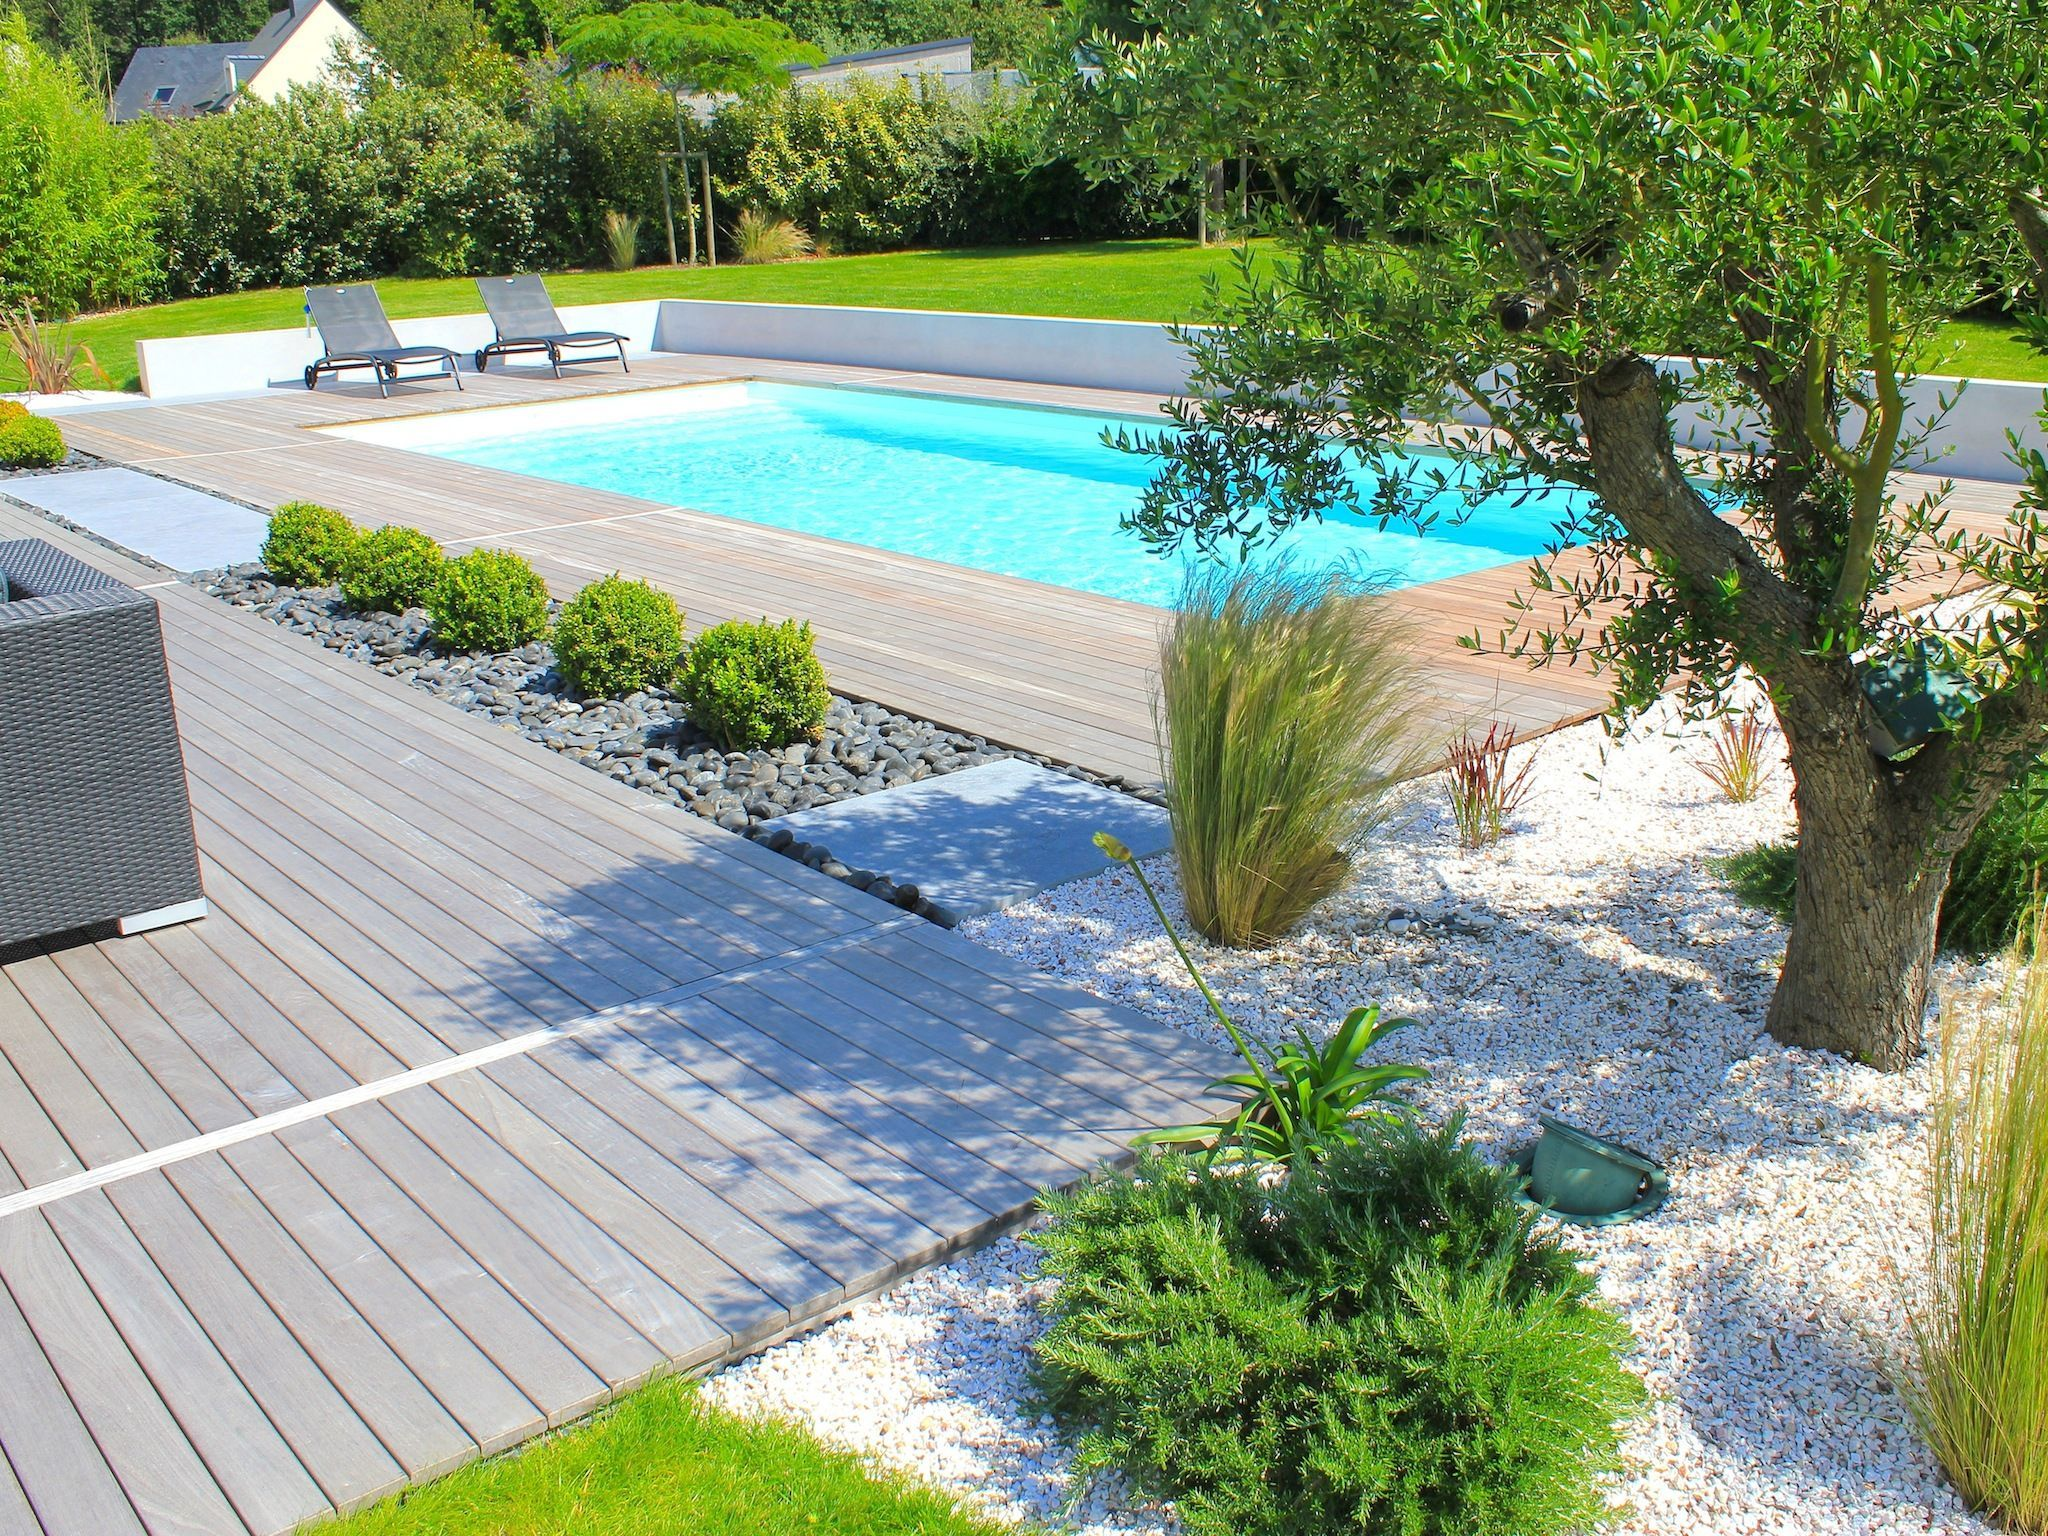 La piscine paysag e par l 39 esprit piscine 9 5 x 4 m - Amenagement autour piscine photos ...